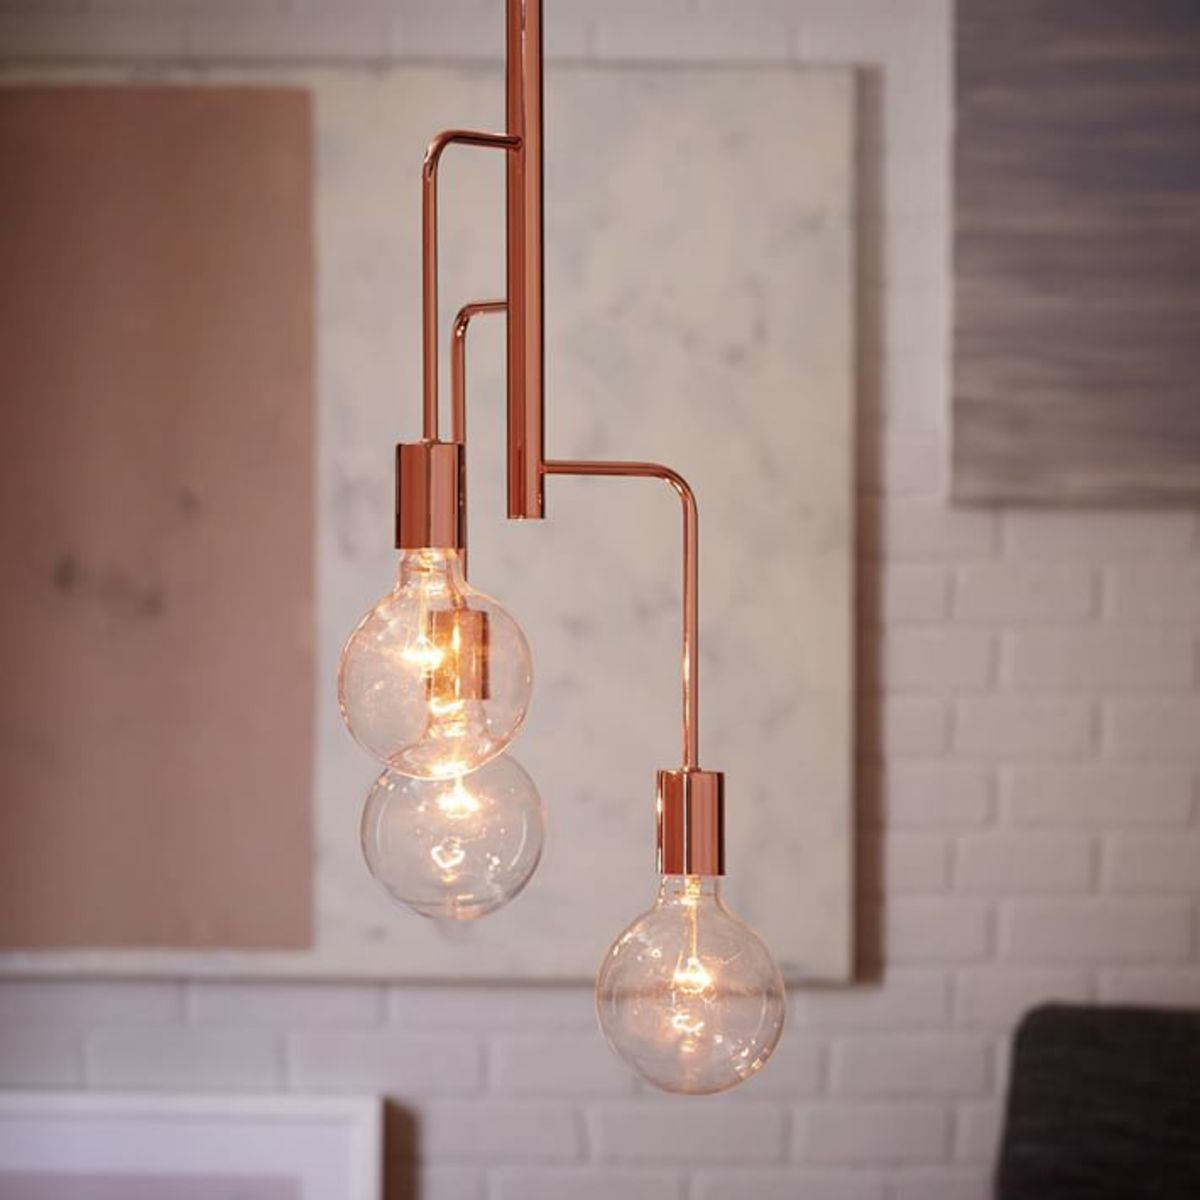 2017 home trends: copper